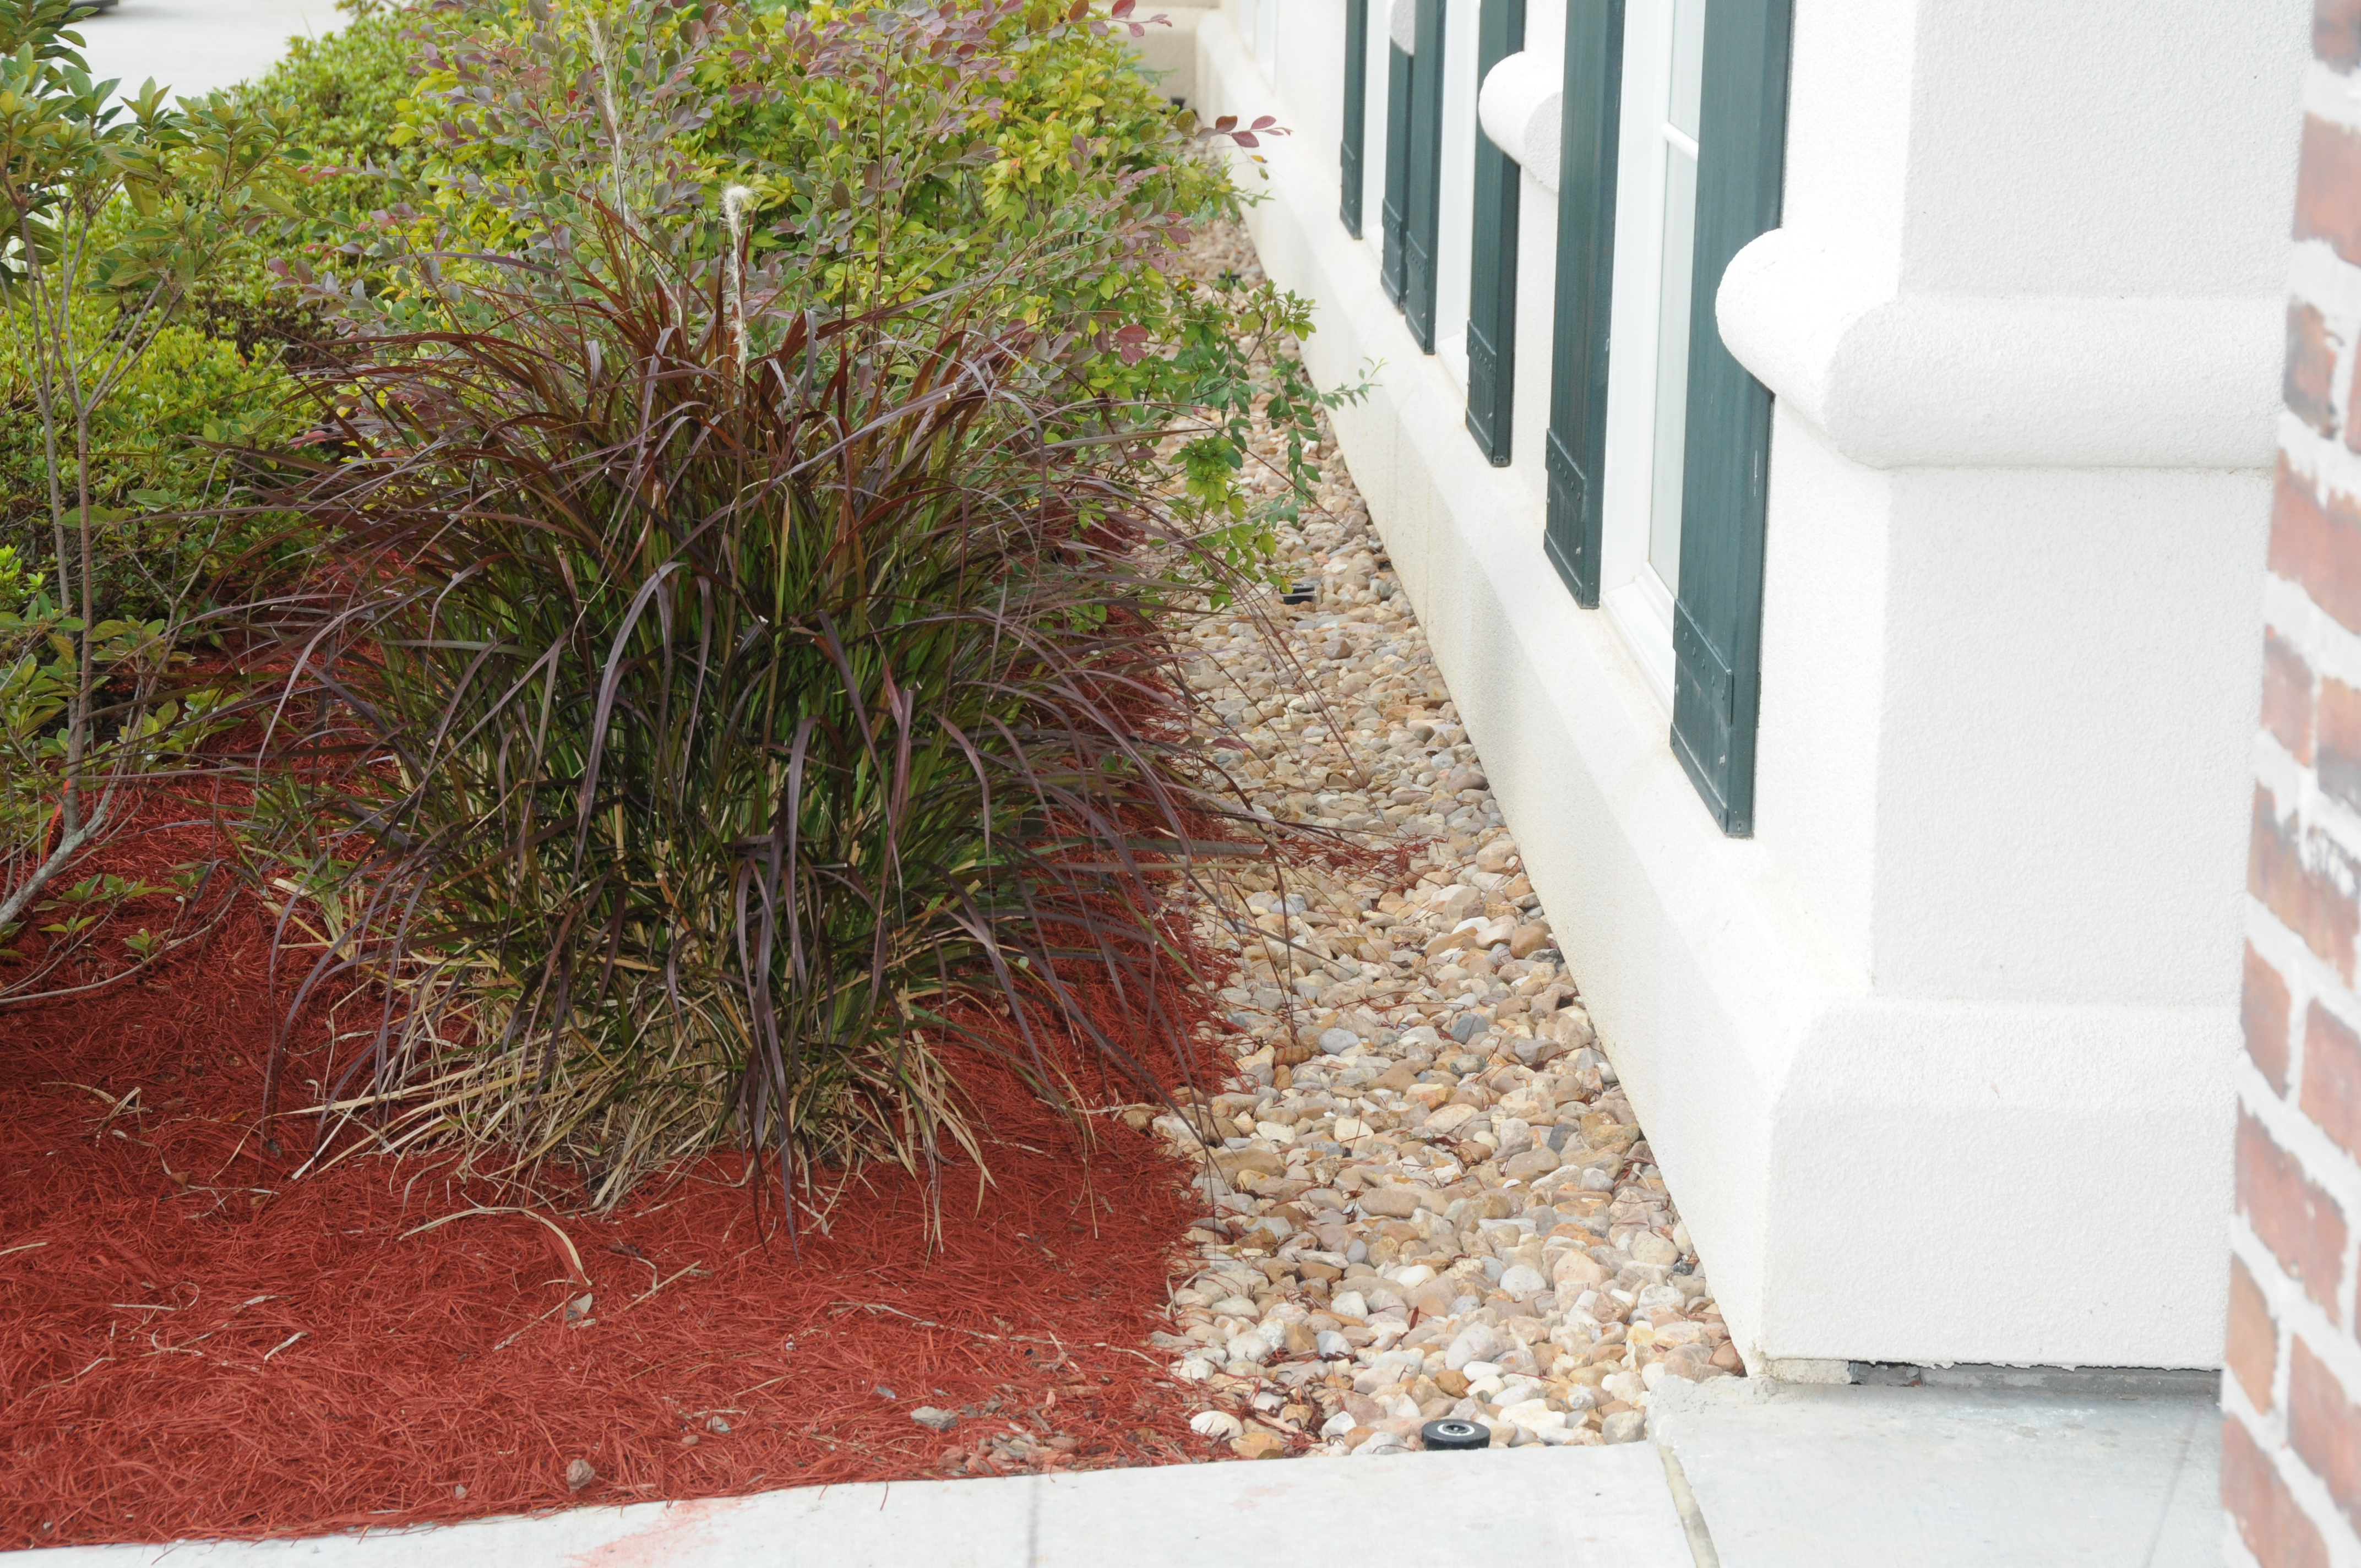 Maintaining a narrow, mulch-free strip along the foundation of a building helps reduce risks of termite infestation.